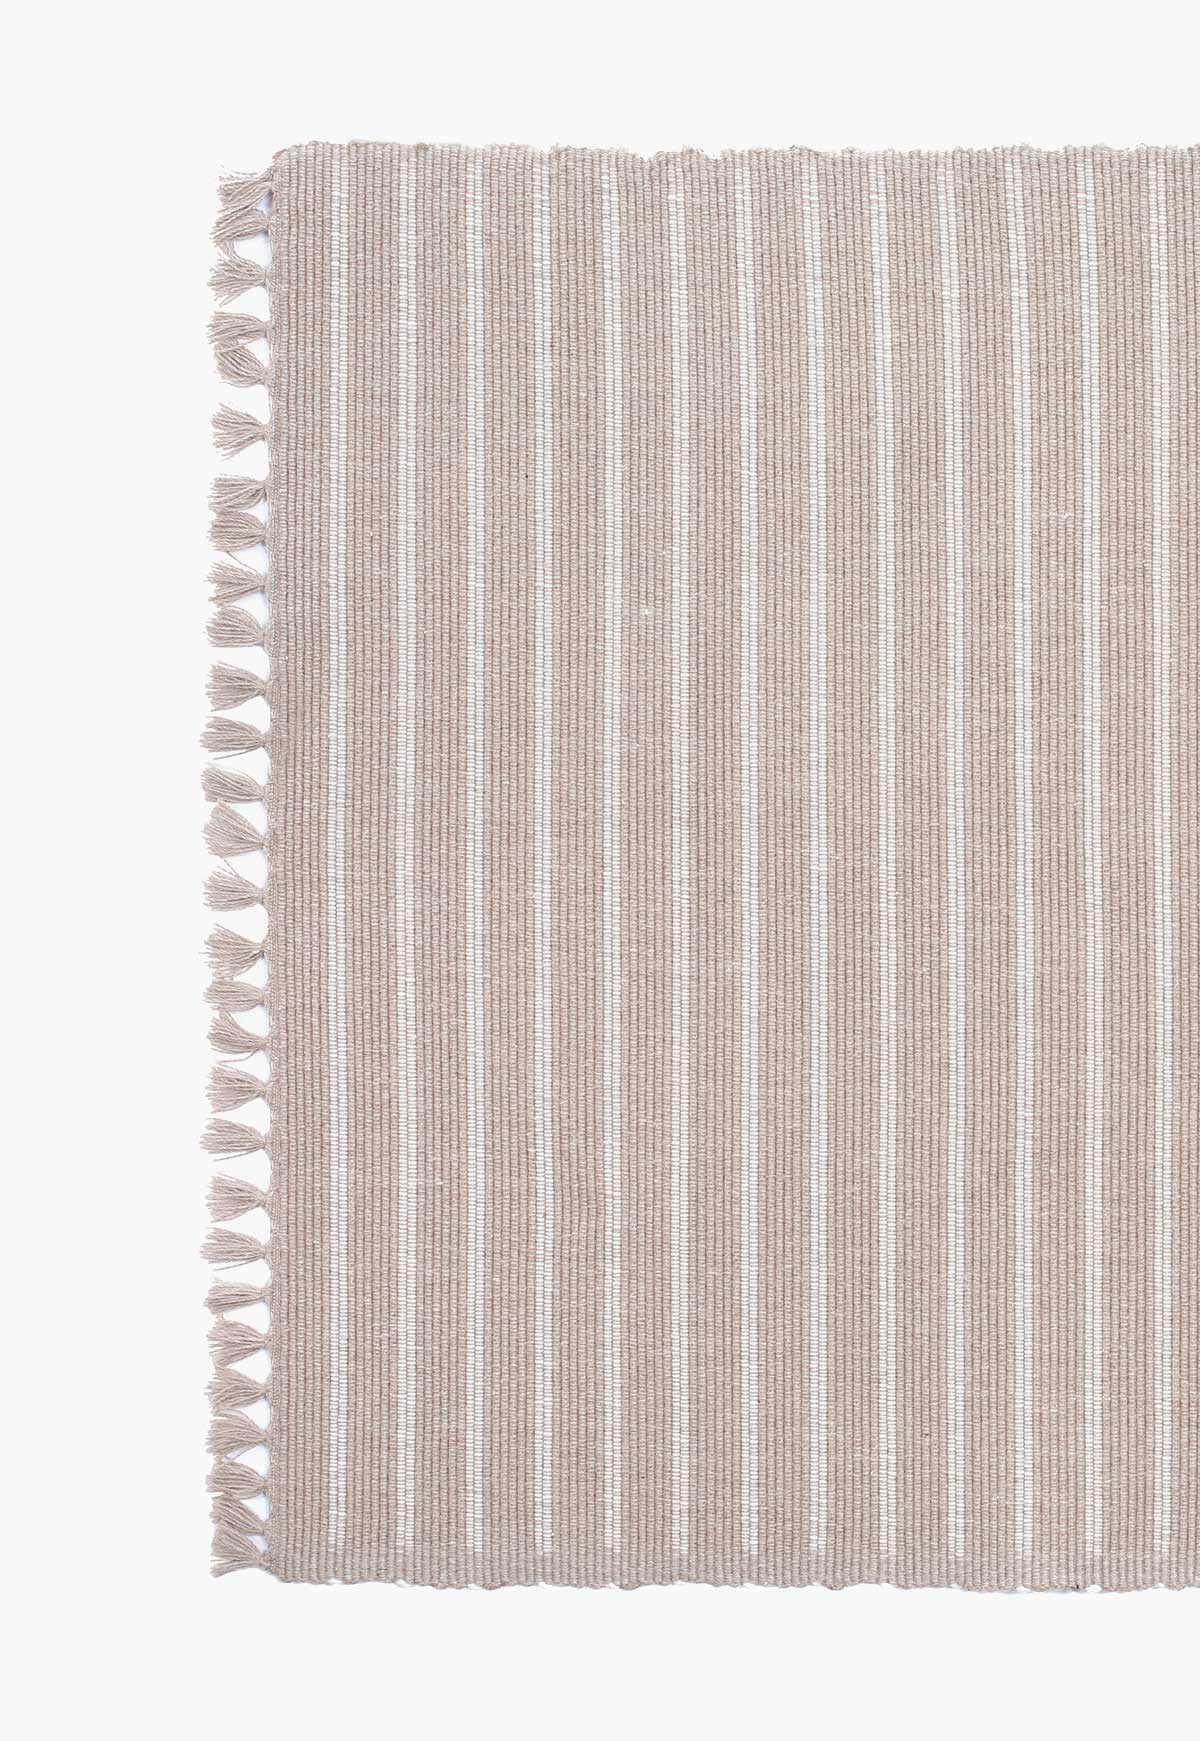 Dark Bali Ribbed Placemats (Pair)